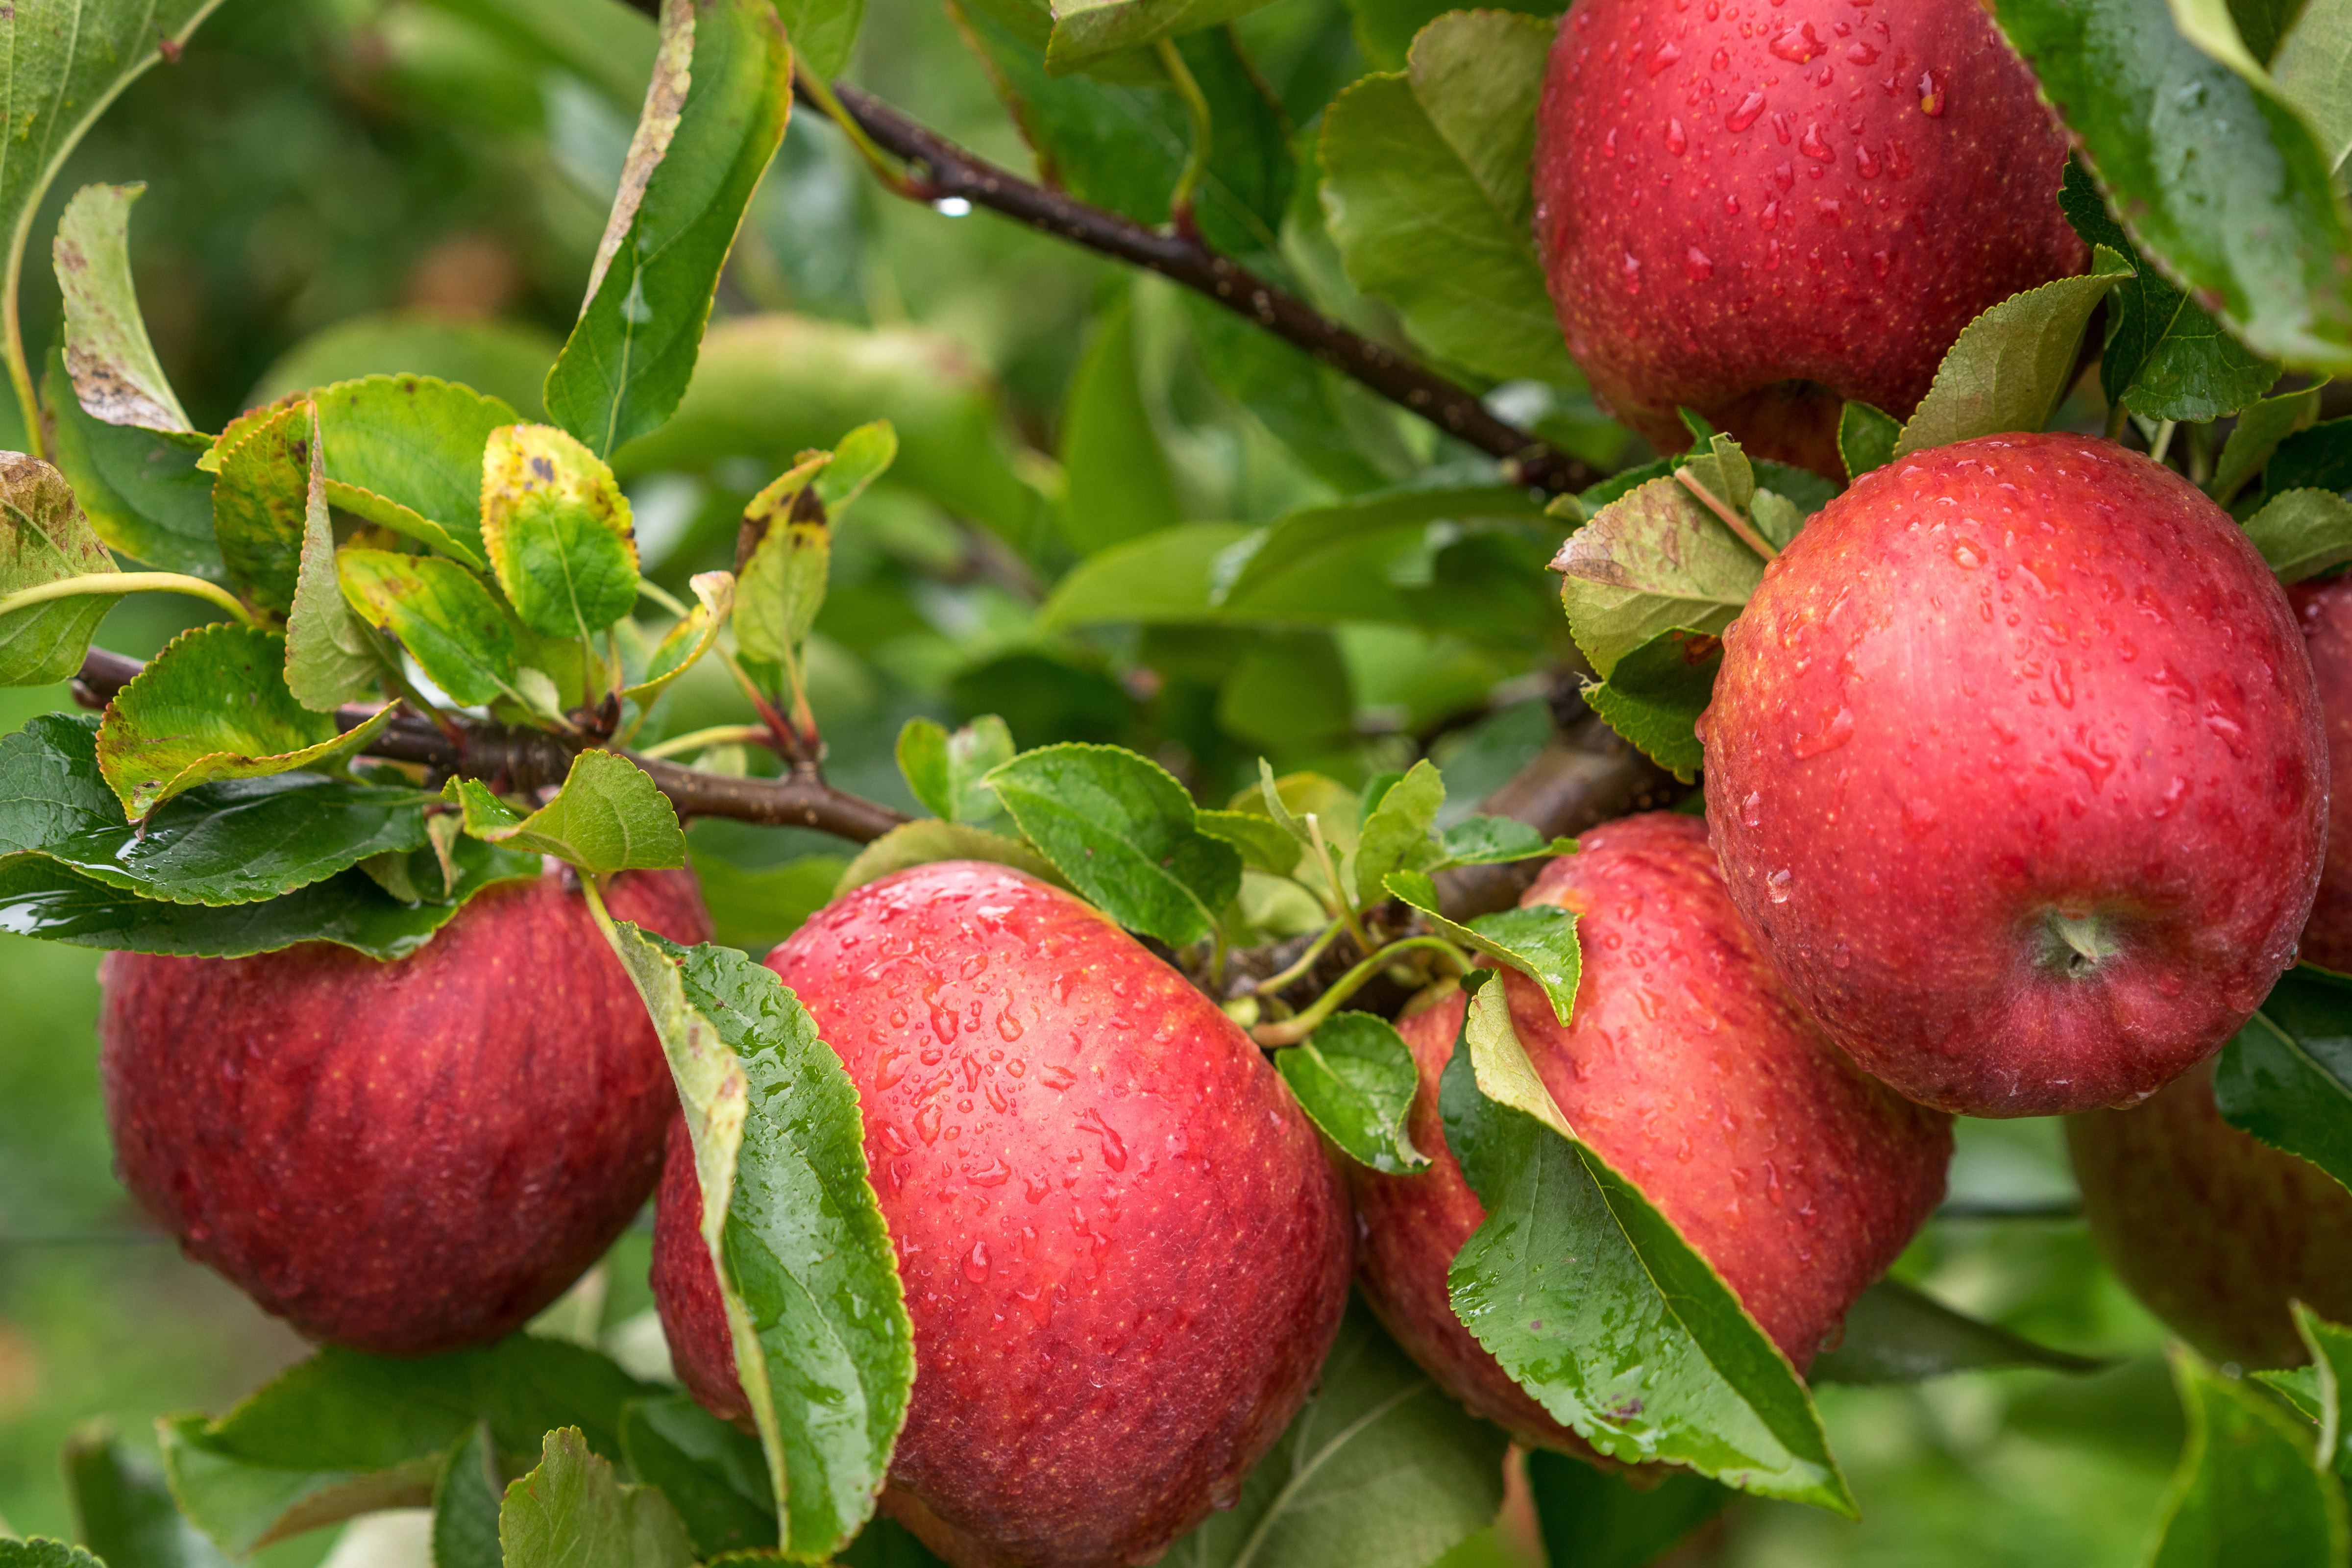 $15K Worth of Apples Vanish From Spicer Orchards